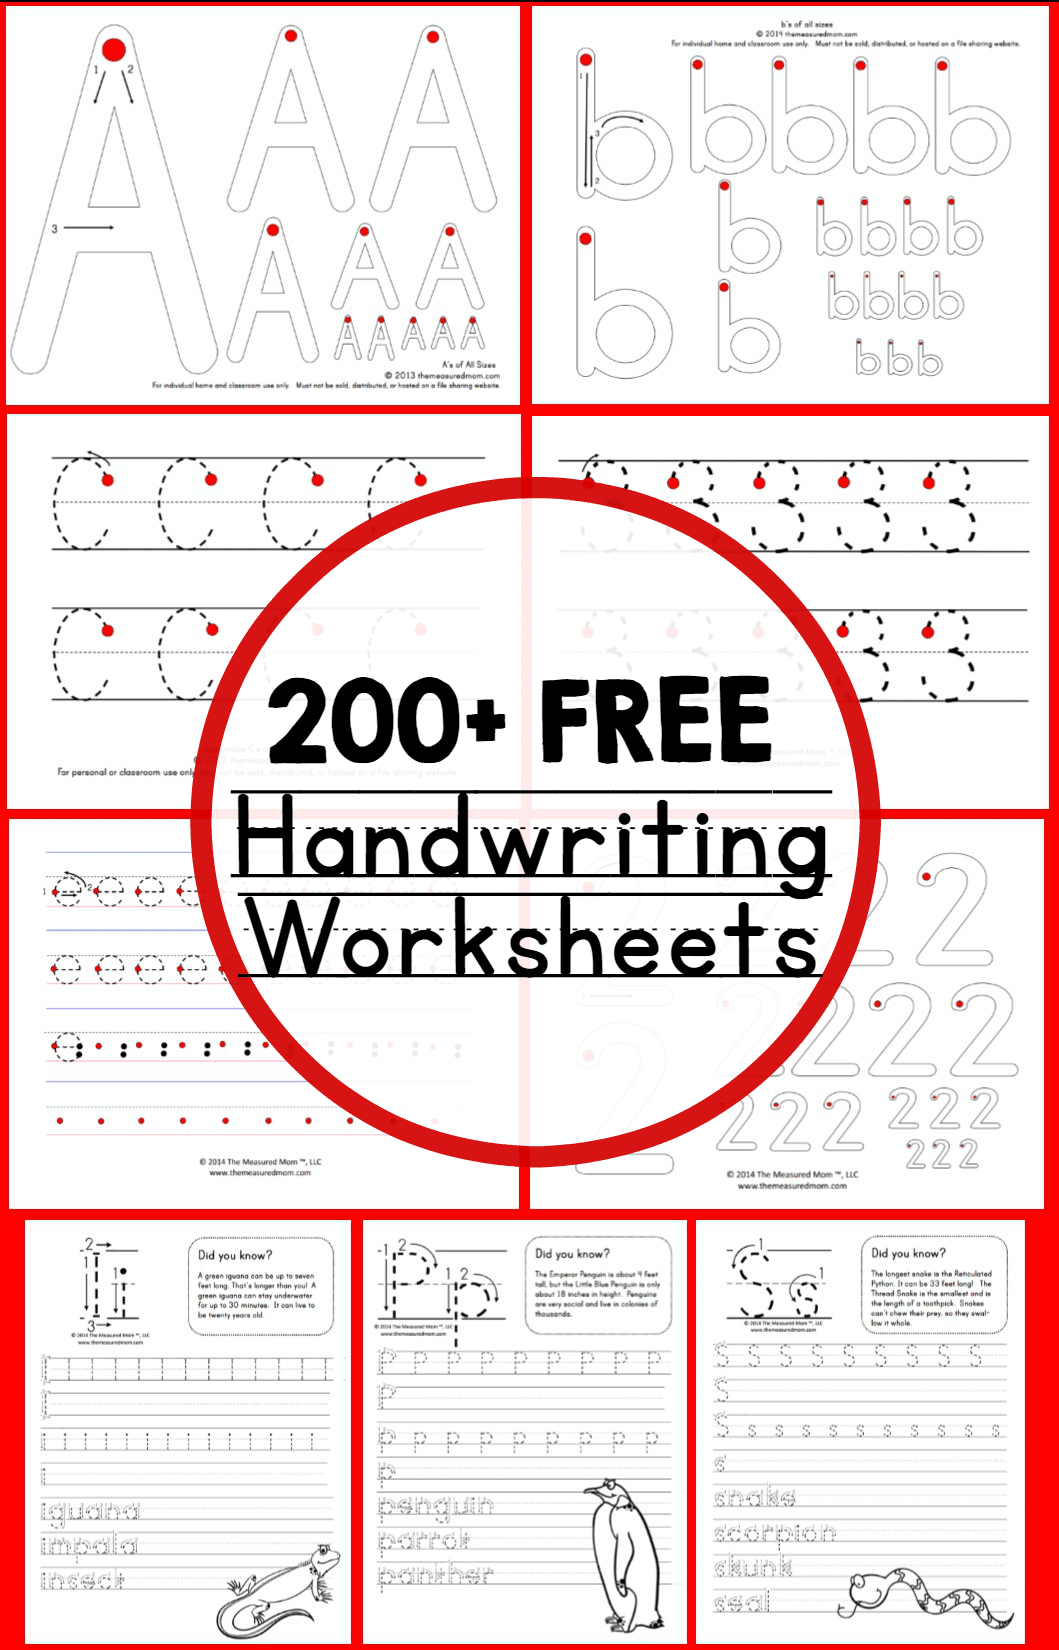 Worksheet Works Pencil Check : Teaching handwriting the measured mom